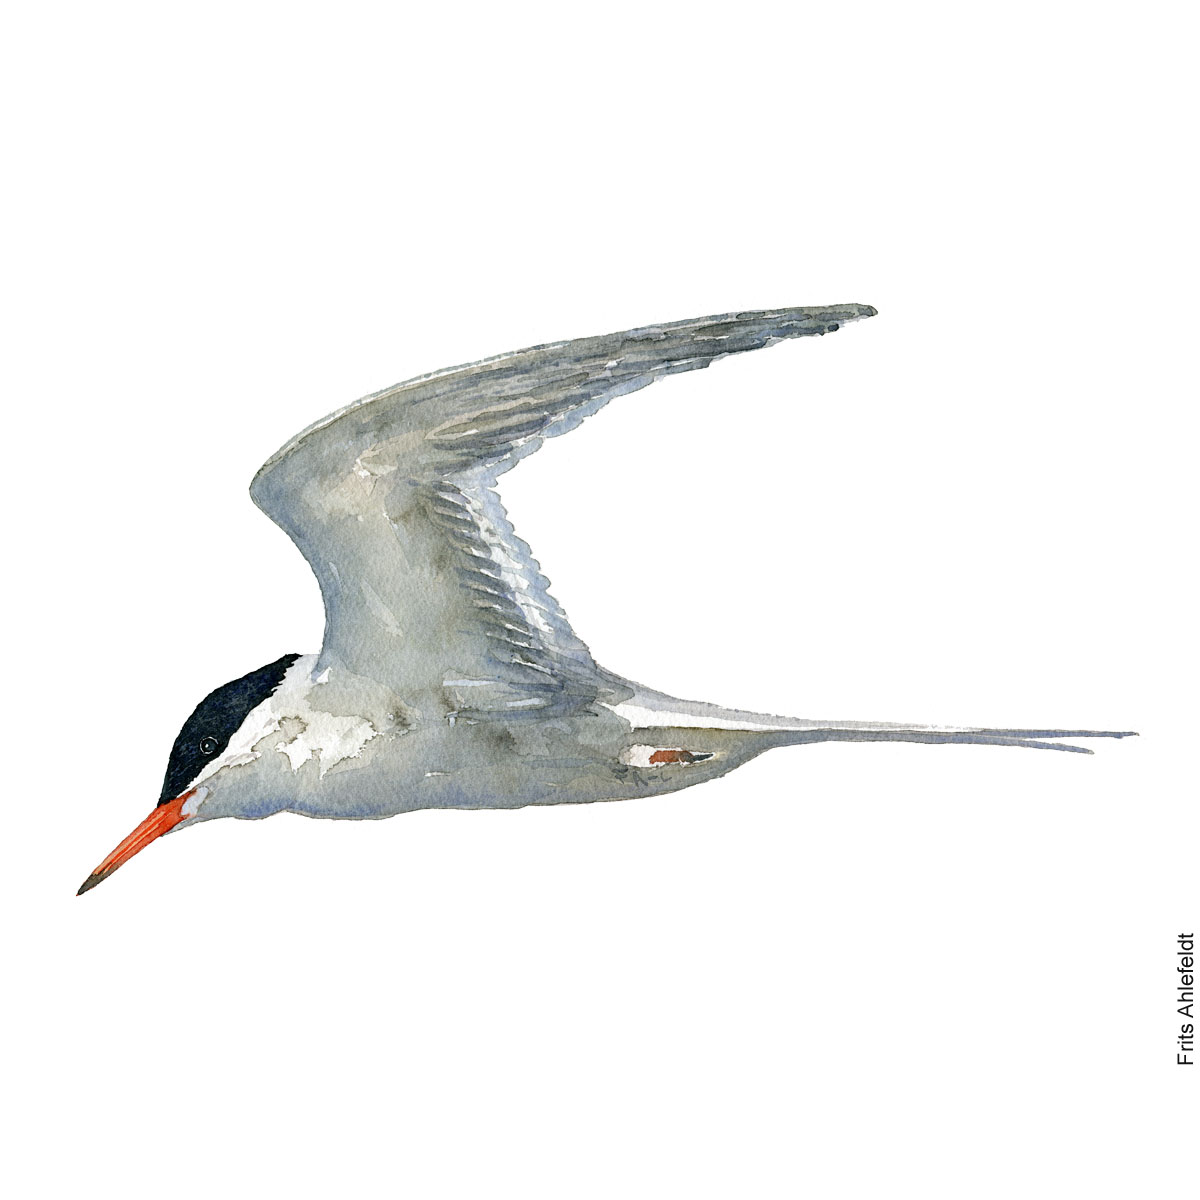 Common tern. Bird watercolor illustration handmade by Frits Ahlefeldt